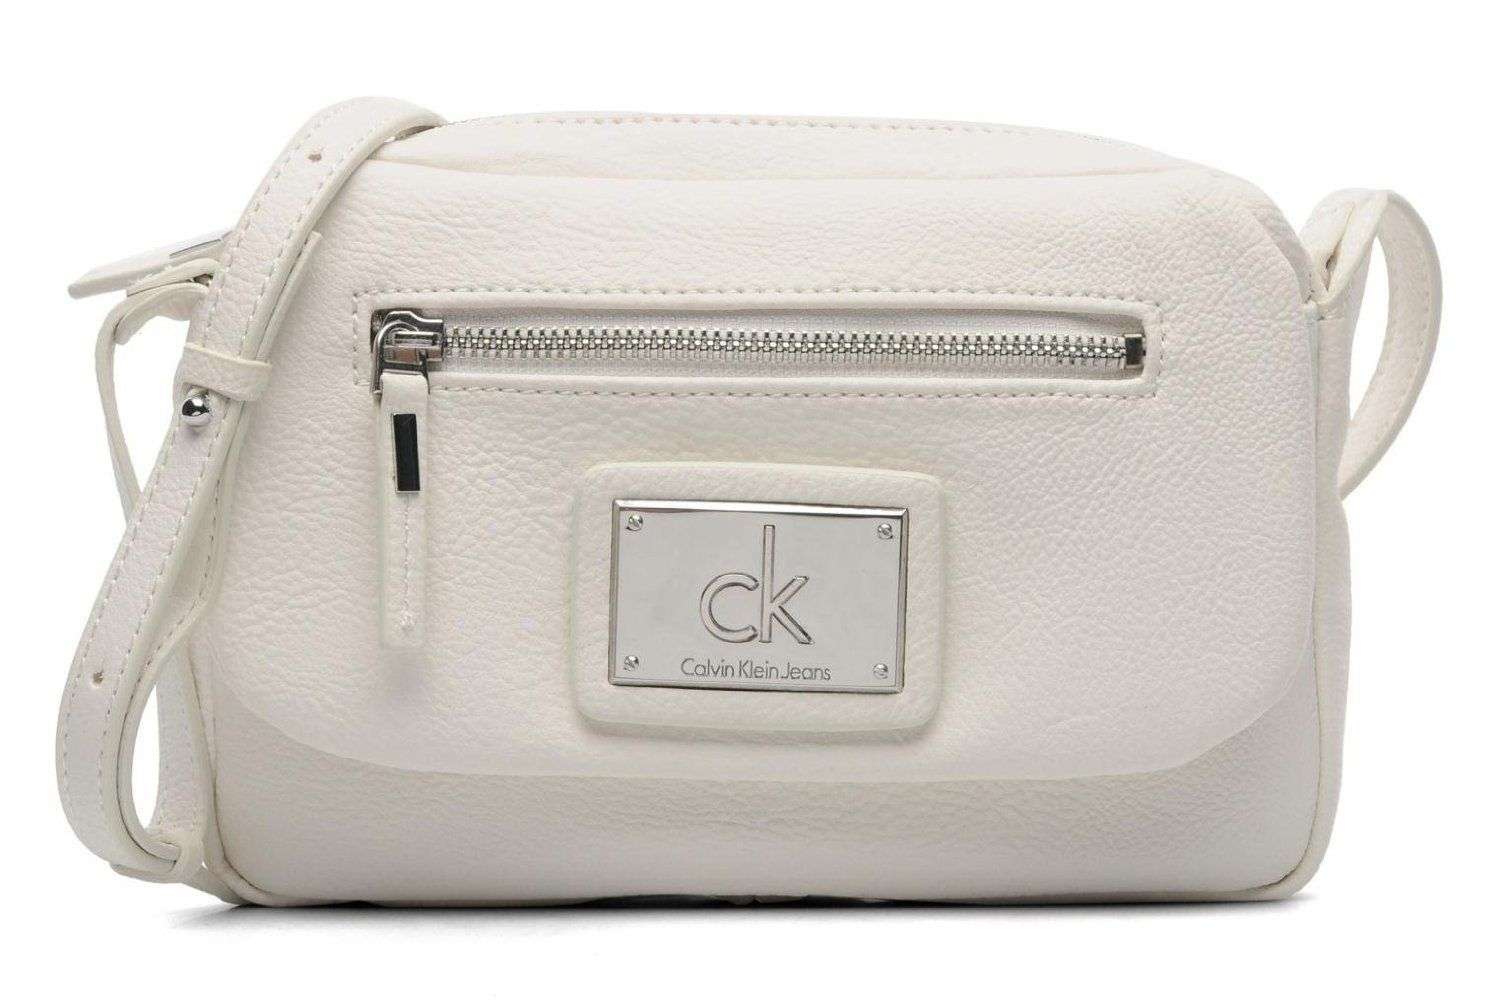 calvin klein shoulder bag fred perry shoulder bag calvin klein shoulder bag